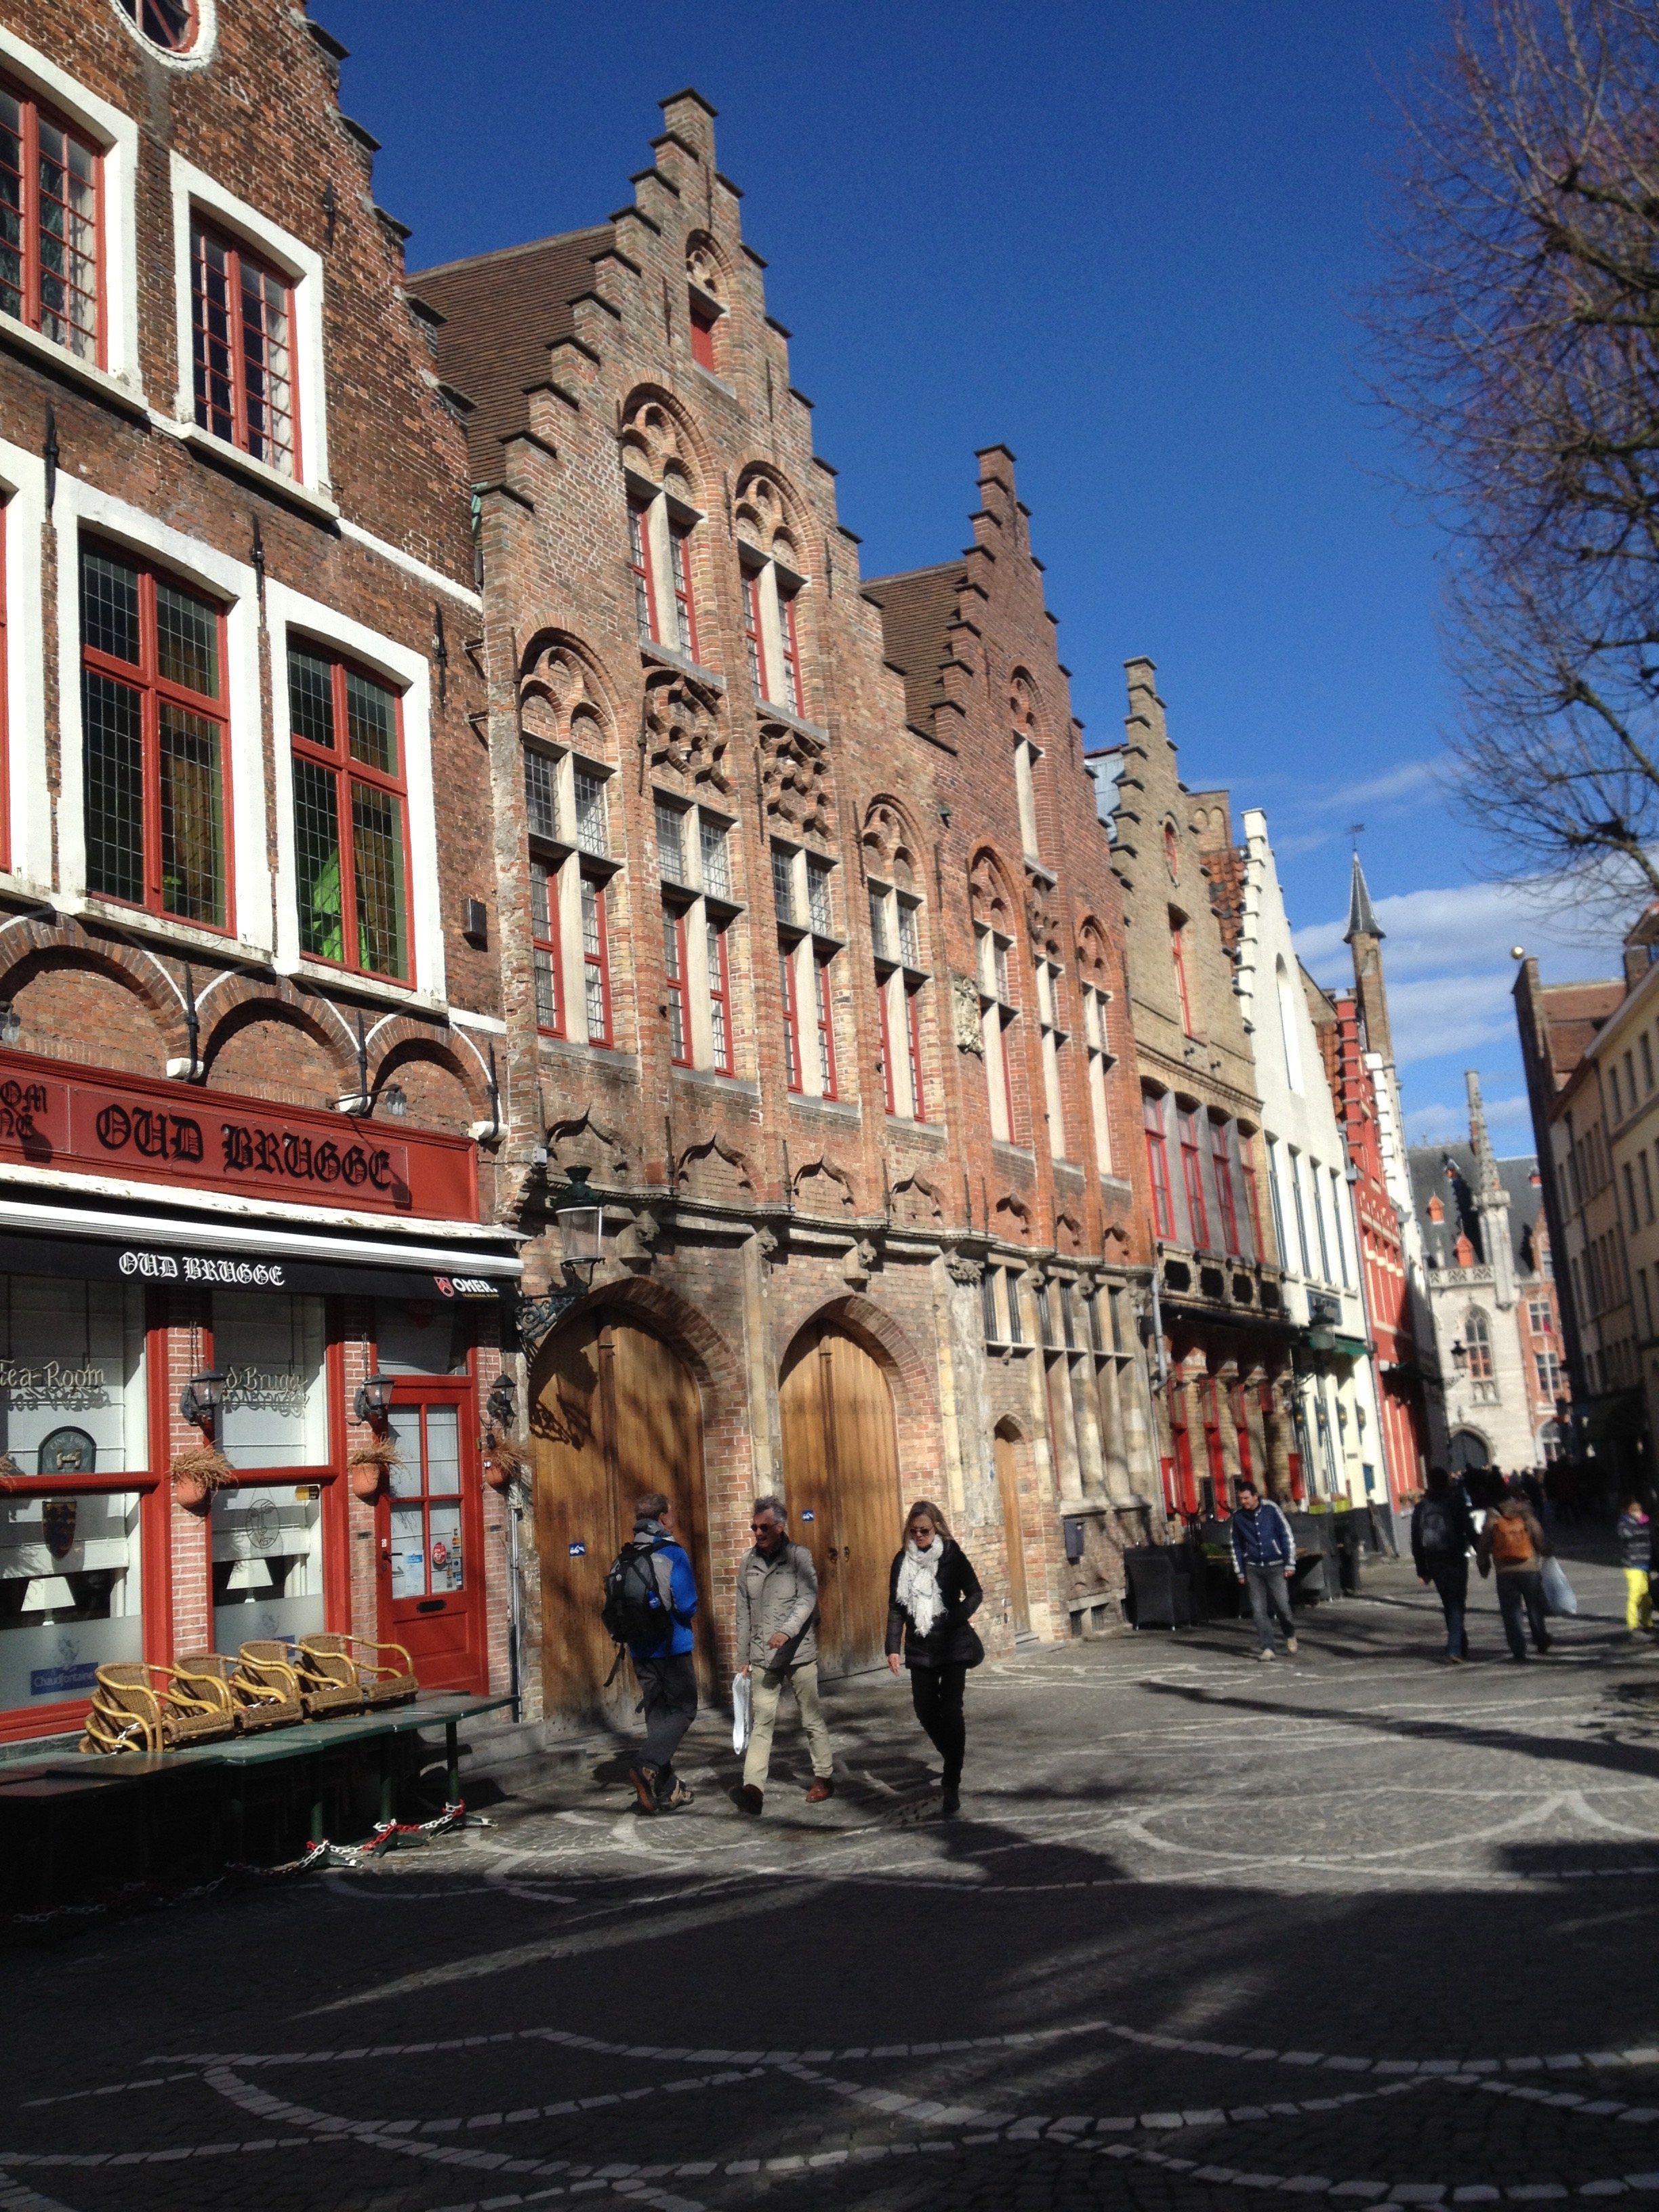 The streets of Brugge